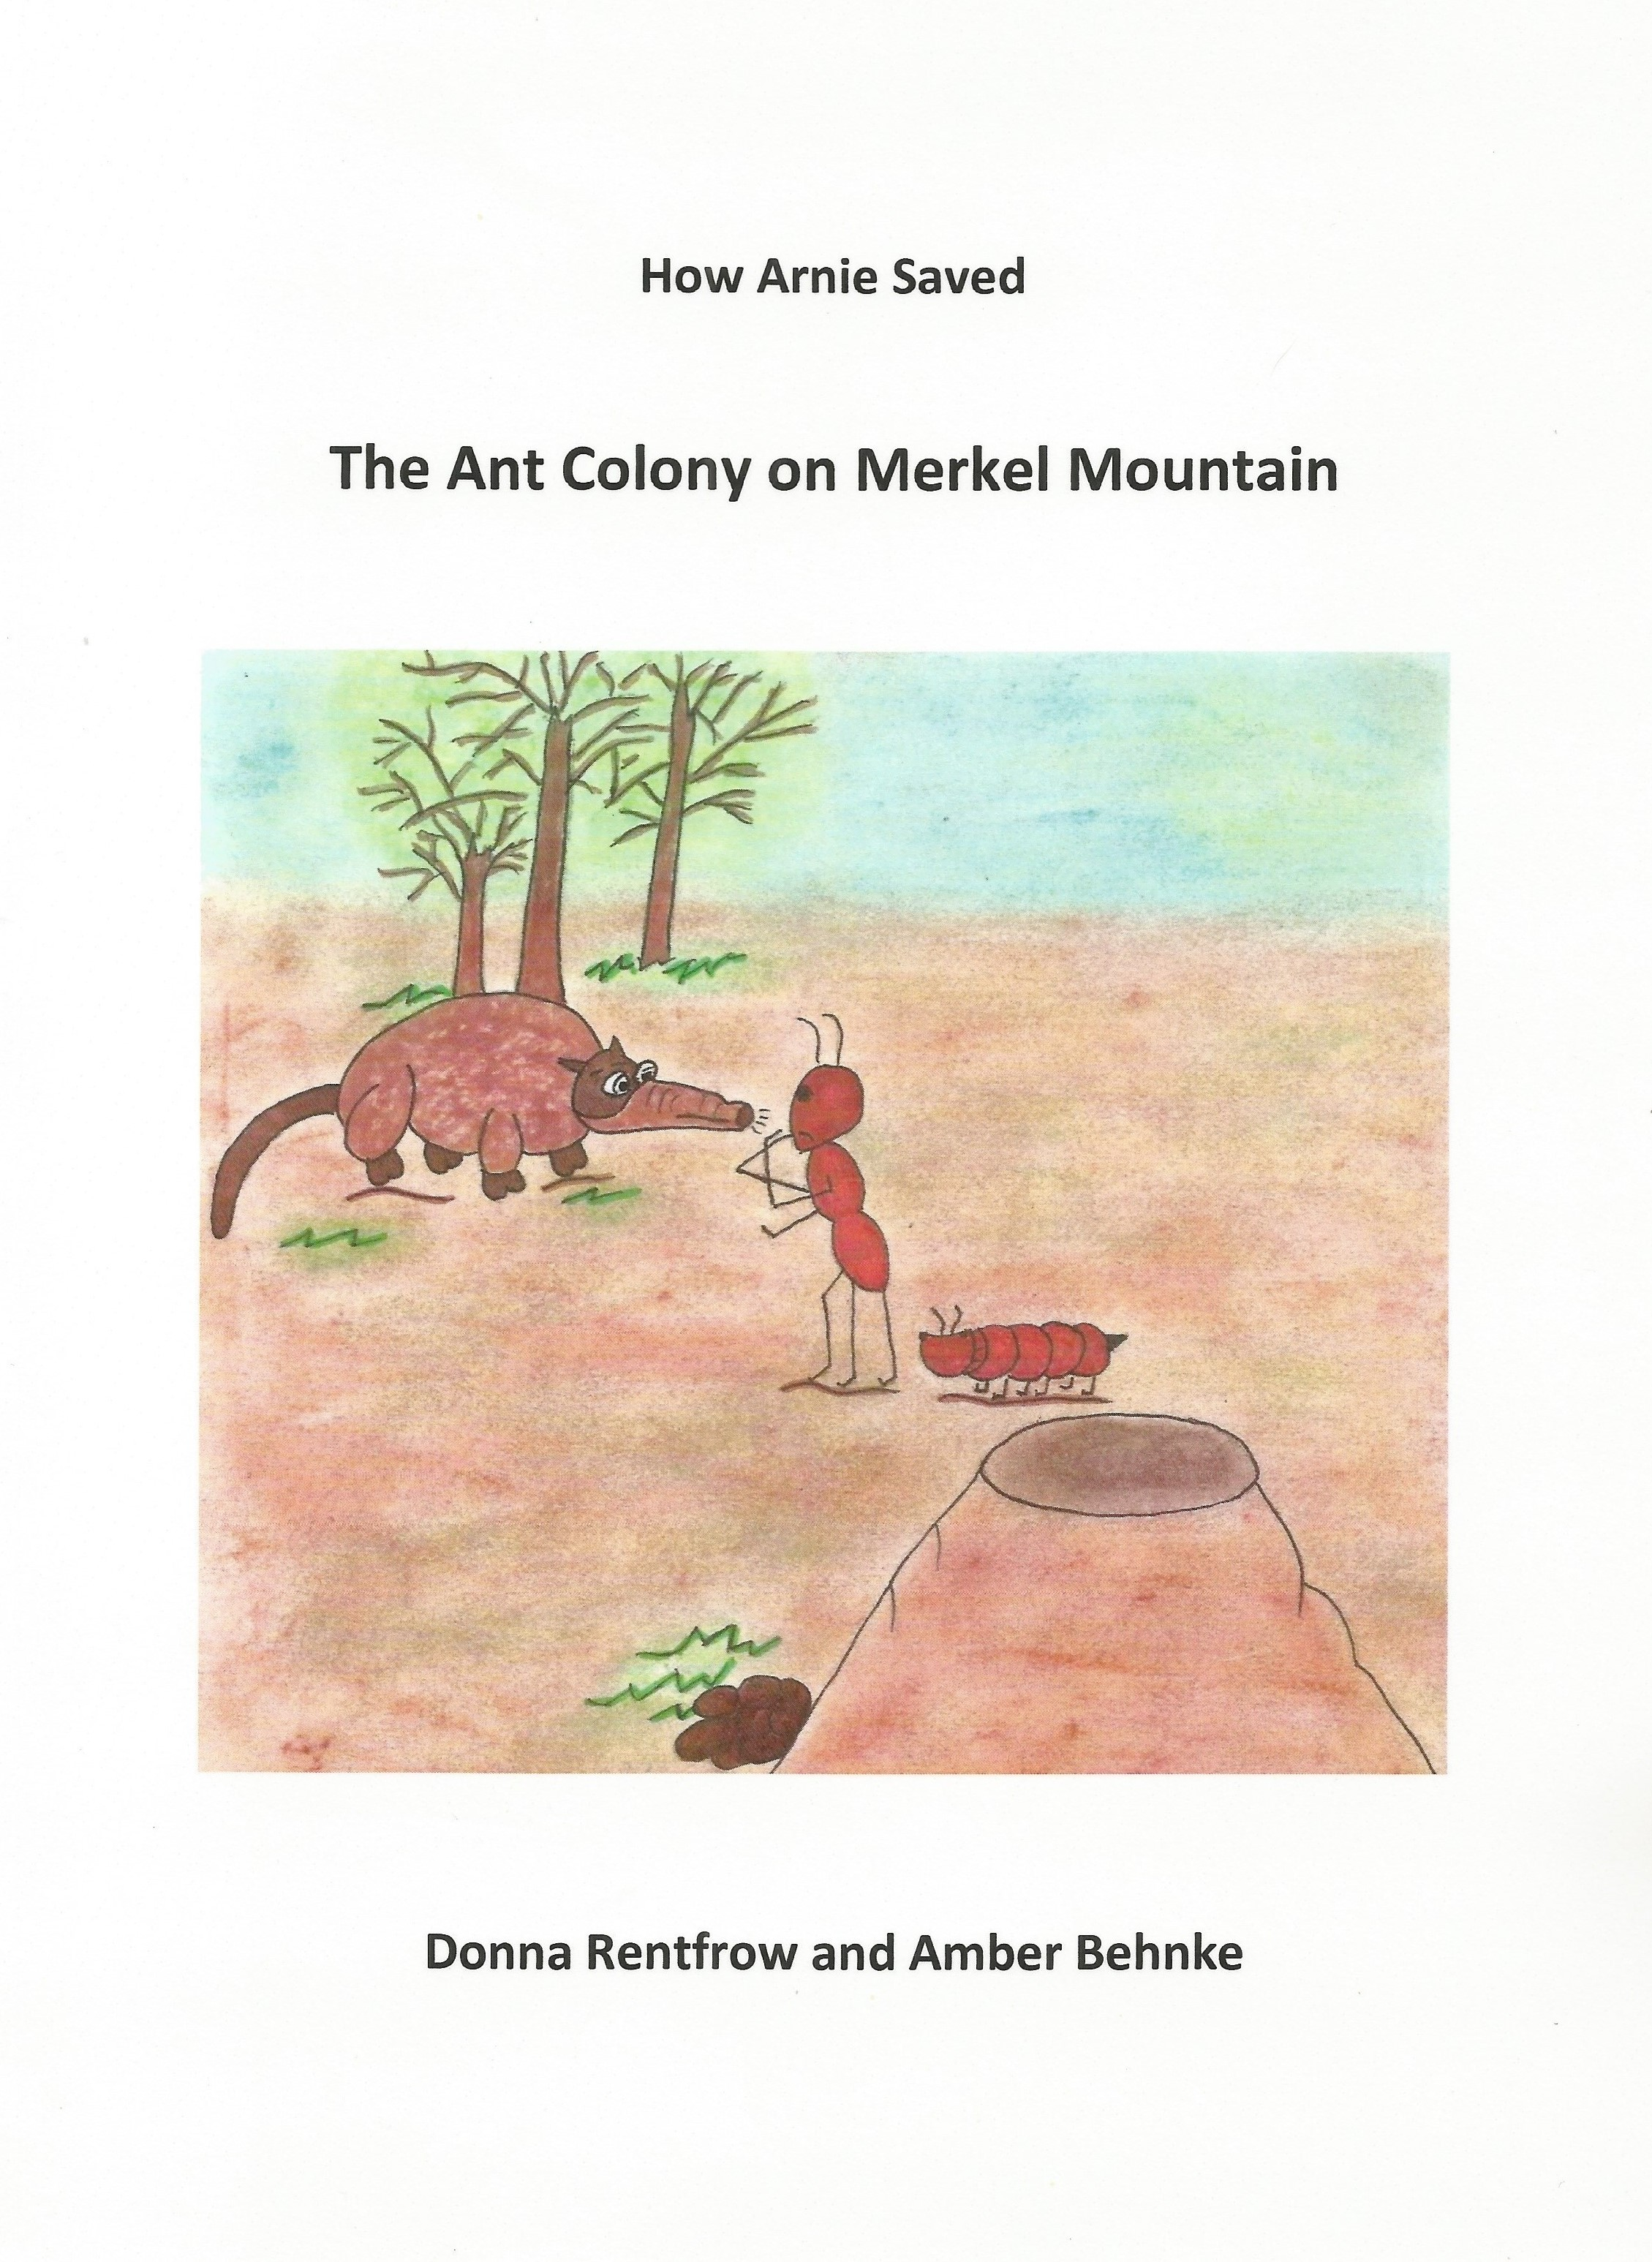 How Arnie Saved the Ant Colony on Merkel Mountain's Ebook Image